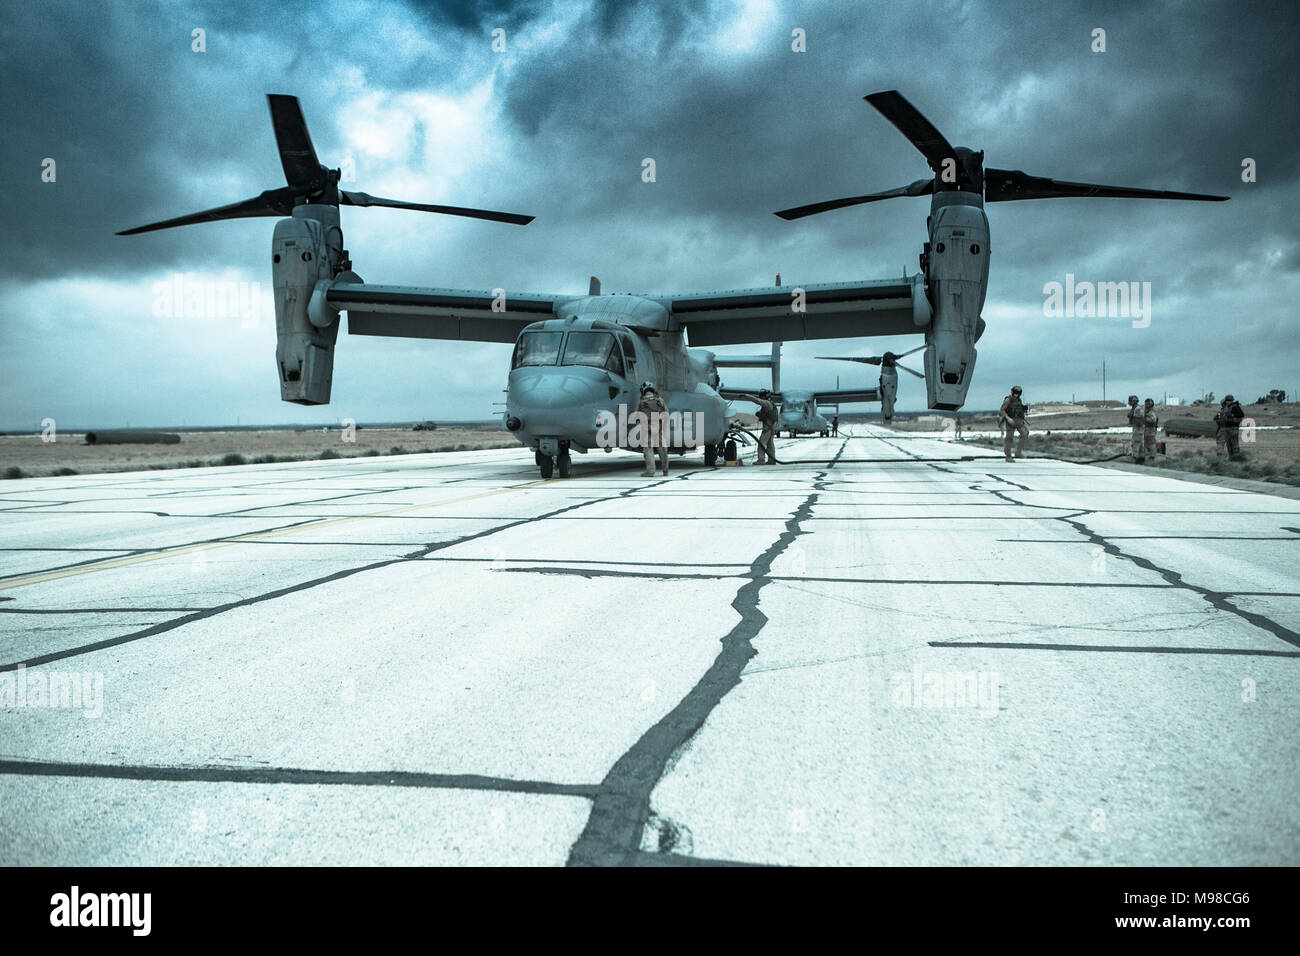 U.S. Marines with Marine Medium Tiltrotor Squadron 363 and Marine Wing Support Squadron 373, Special Purpose Marine Air-Ground Task Force – Crisis Response – Central Command, refuel two MV-22B Osprey tiltrotor aircraft at a forward arming and refueling point (FARP) Feb. 26, 2018. The FARP was set up by Marines with MWSS-373 so the Osprey could refuel mid-mission. Stock Photo